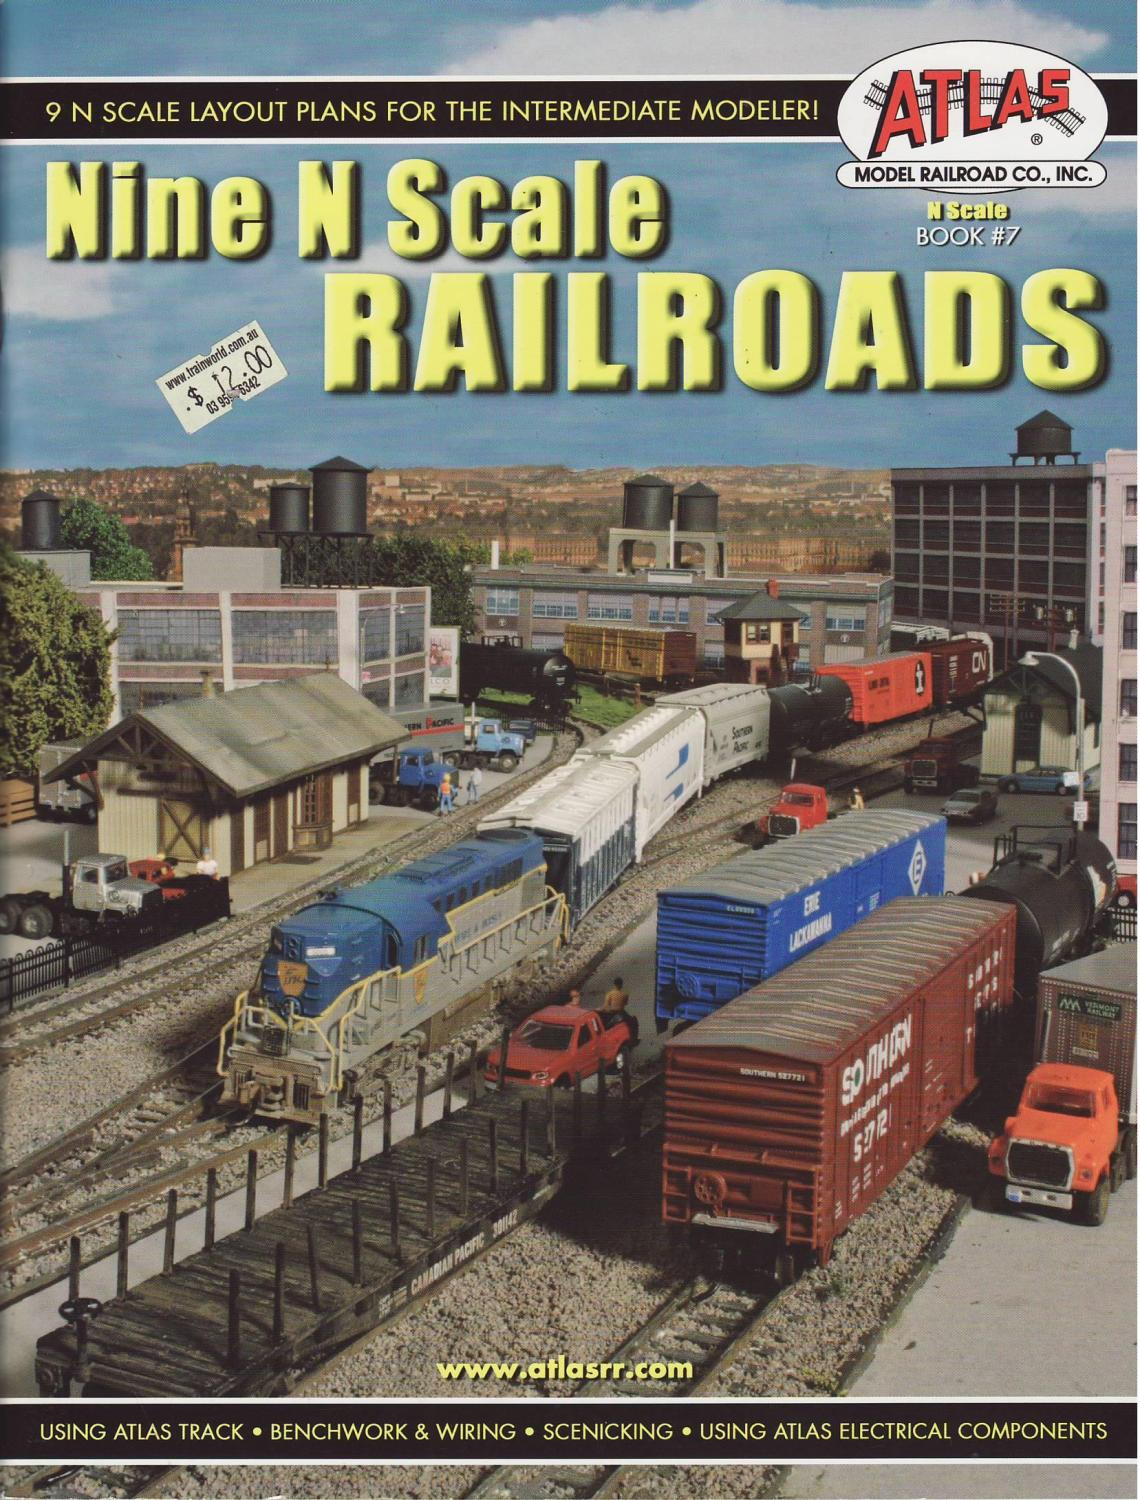 hight resolution of nine n scale railroads 9 n scale layout plans for the intermediate modeler not